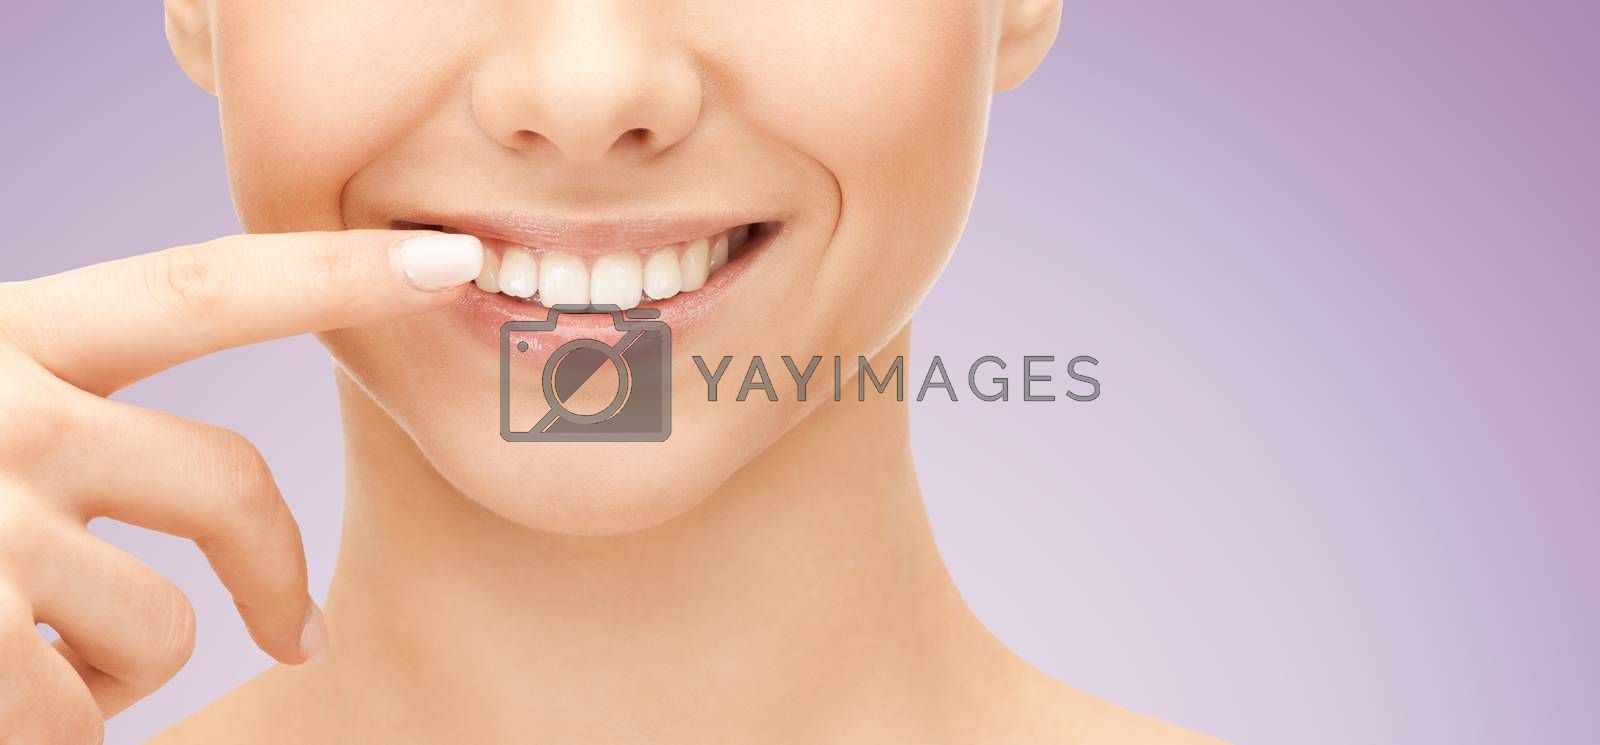 dental health, beauty, hygiene and people concept - close up of smiling woman face pointing to teeth over violet background